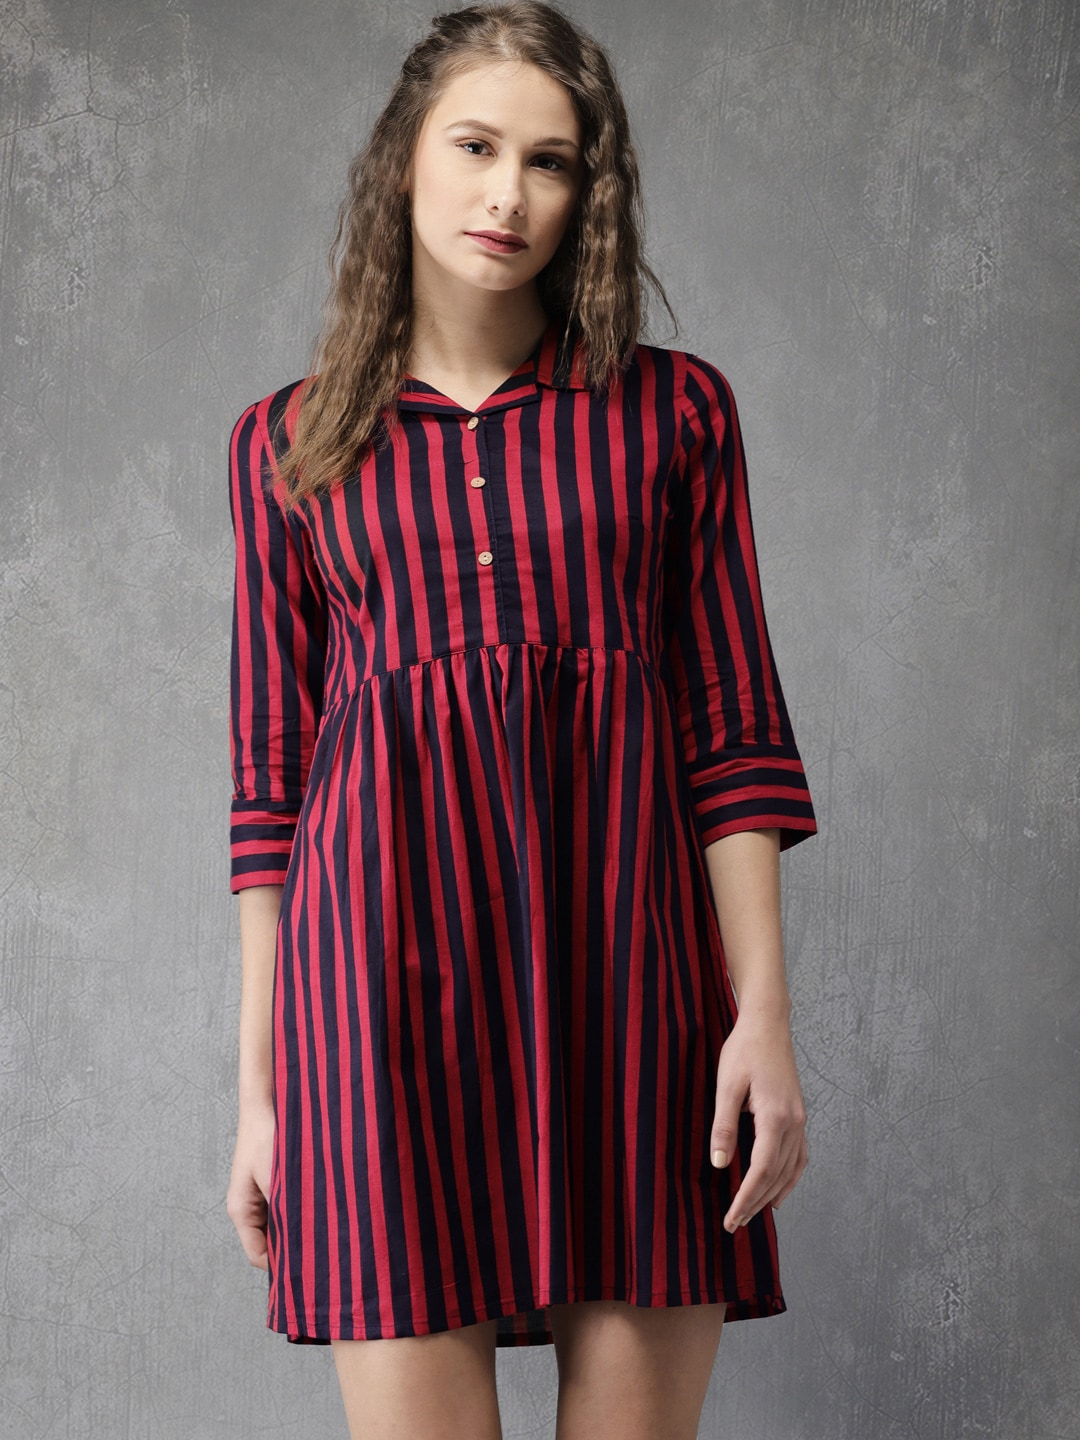 3982f488746 Striped Dresses - Buy Striped Dresses online in India